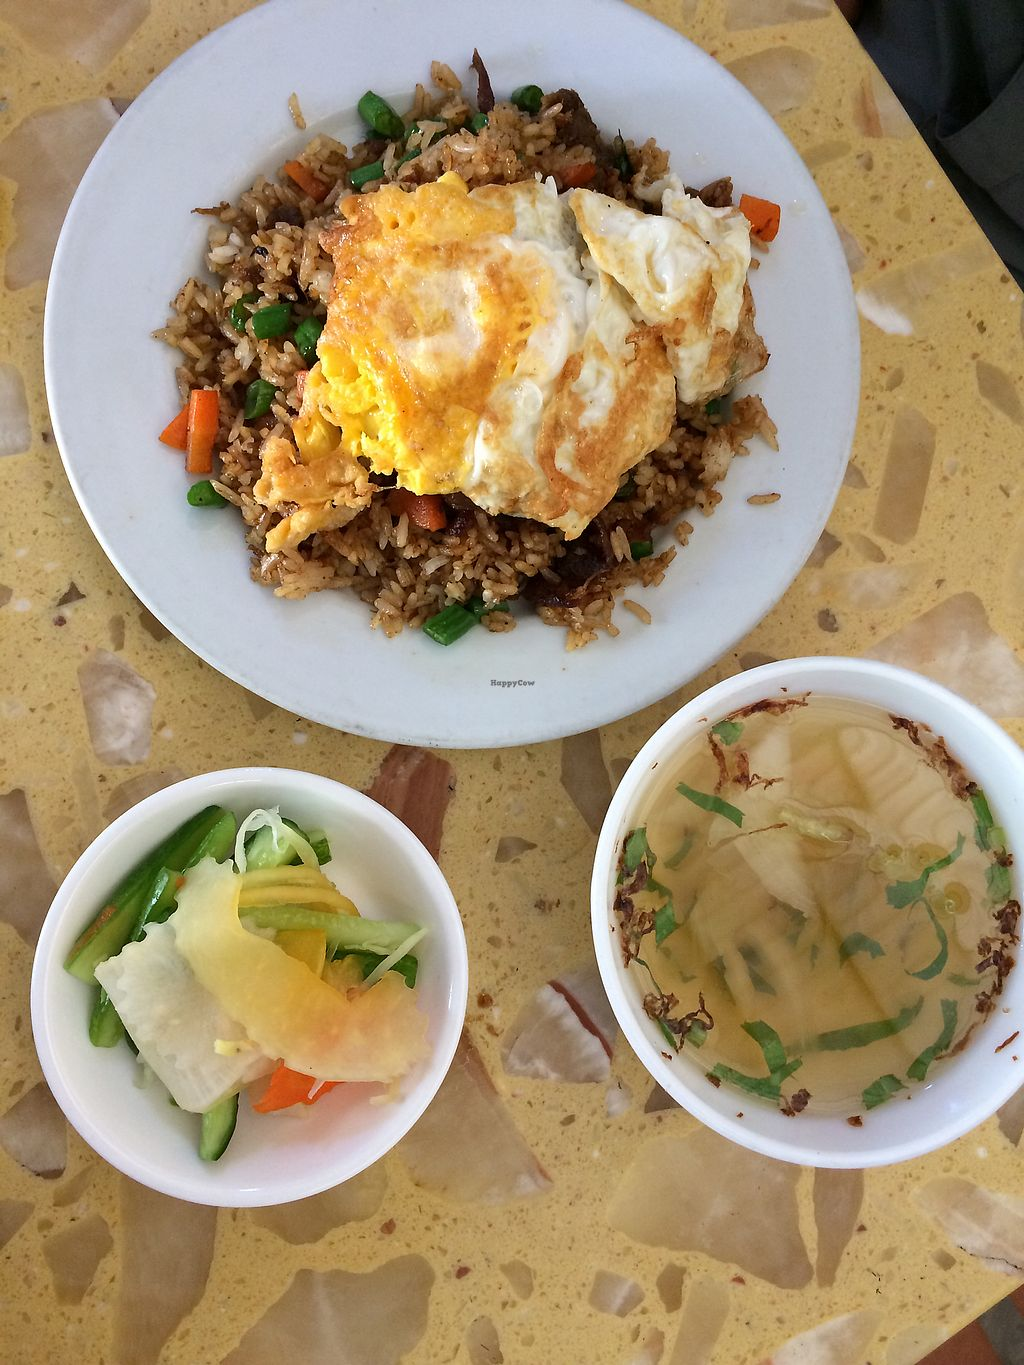 """Photo of Sir Si Pha  by <a href=""""/members/profile/Astrocake"""">Astrocake</a> <br/>Fried rice comes with pickles and soup <br/> December 17, 2017  - <a href='/contact/abuse/image/45502/336351'>Report</a>"""